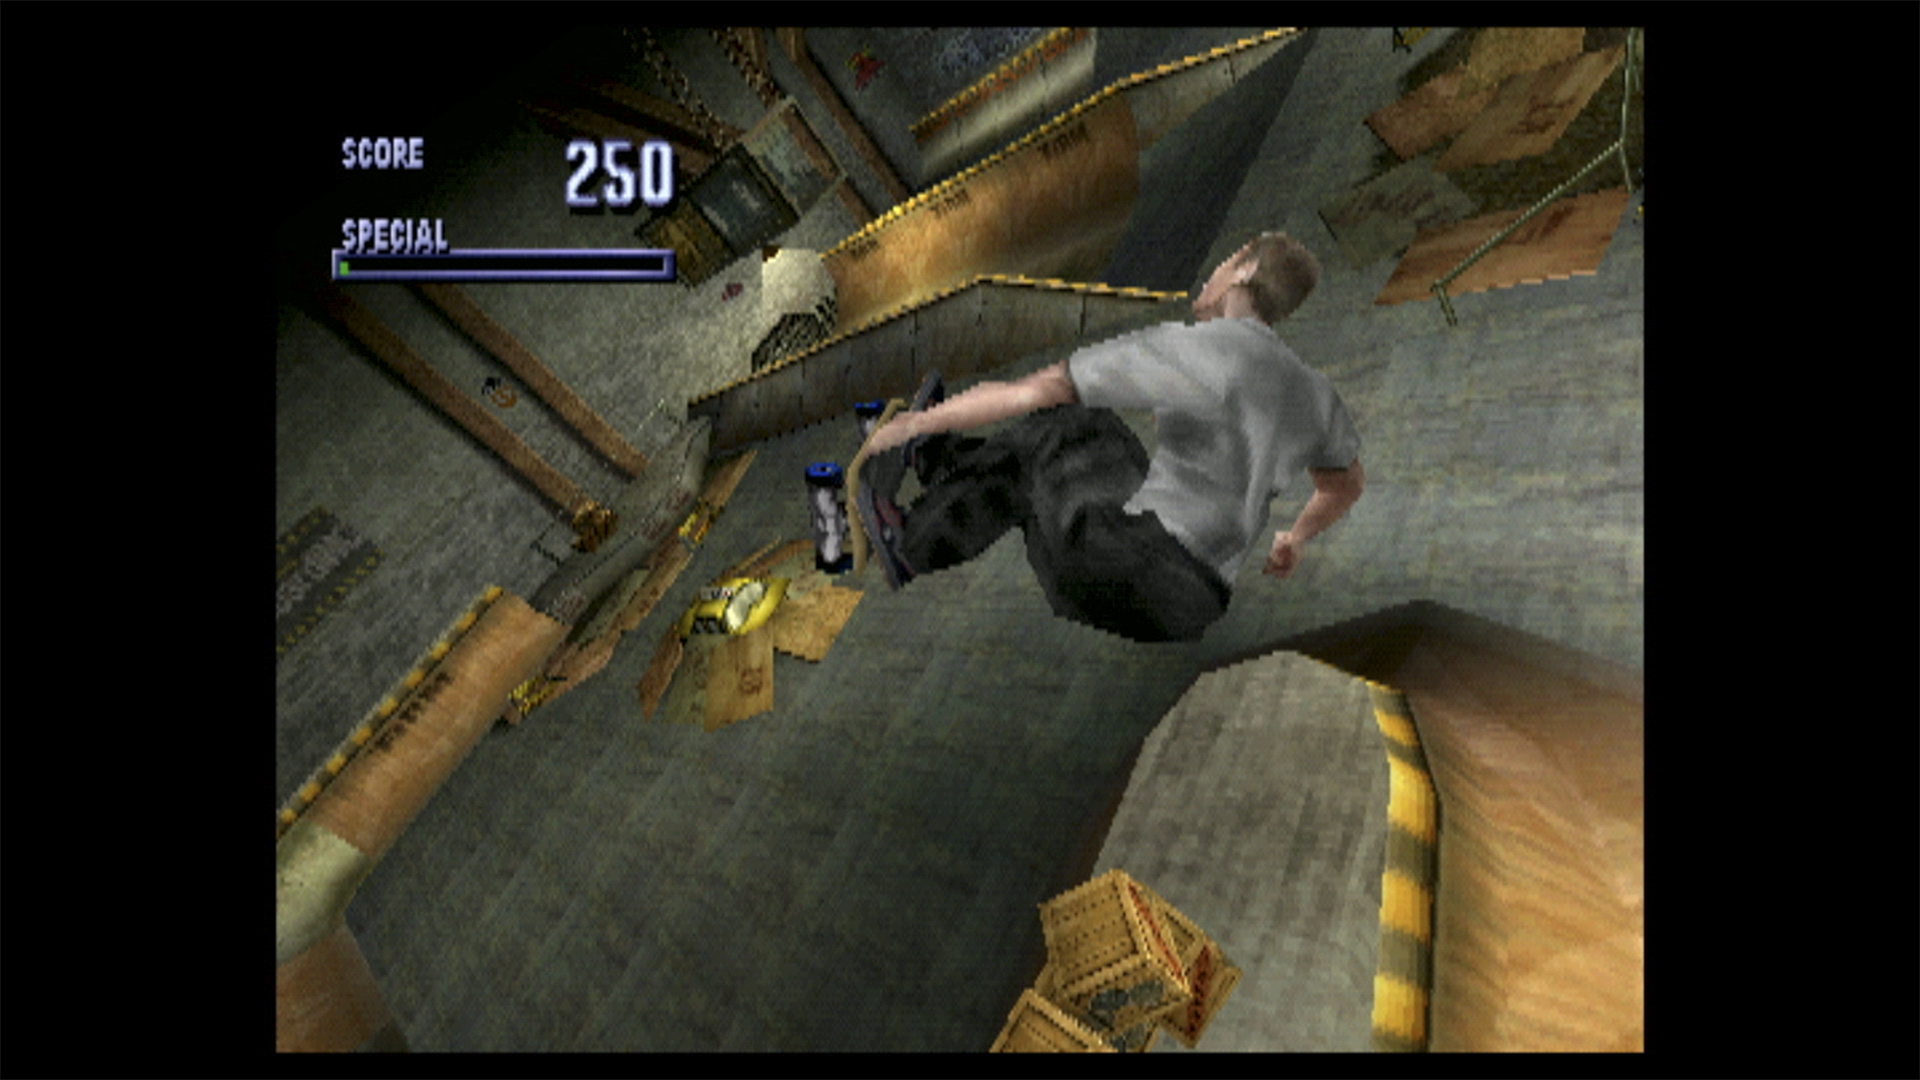 Tony Hawk's Pro Skater 1 + 2 - Gallery Screenshot 4